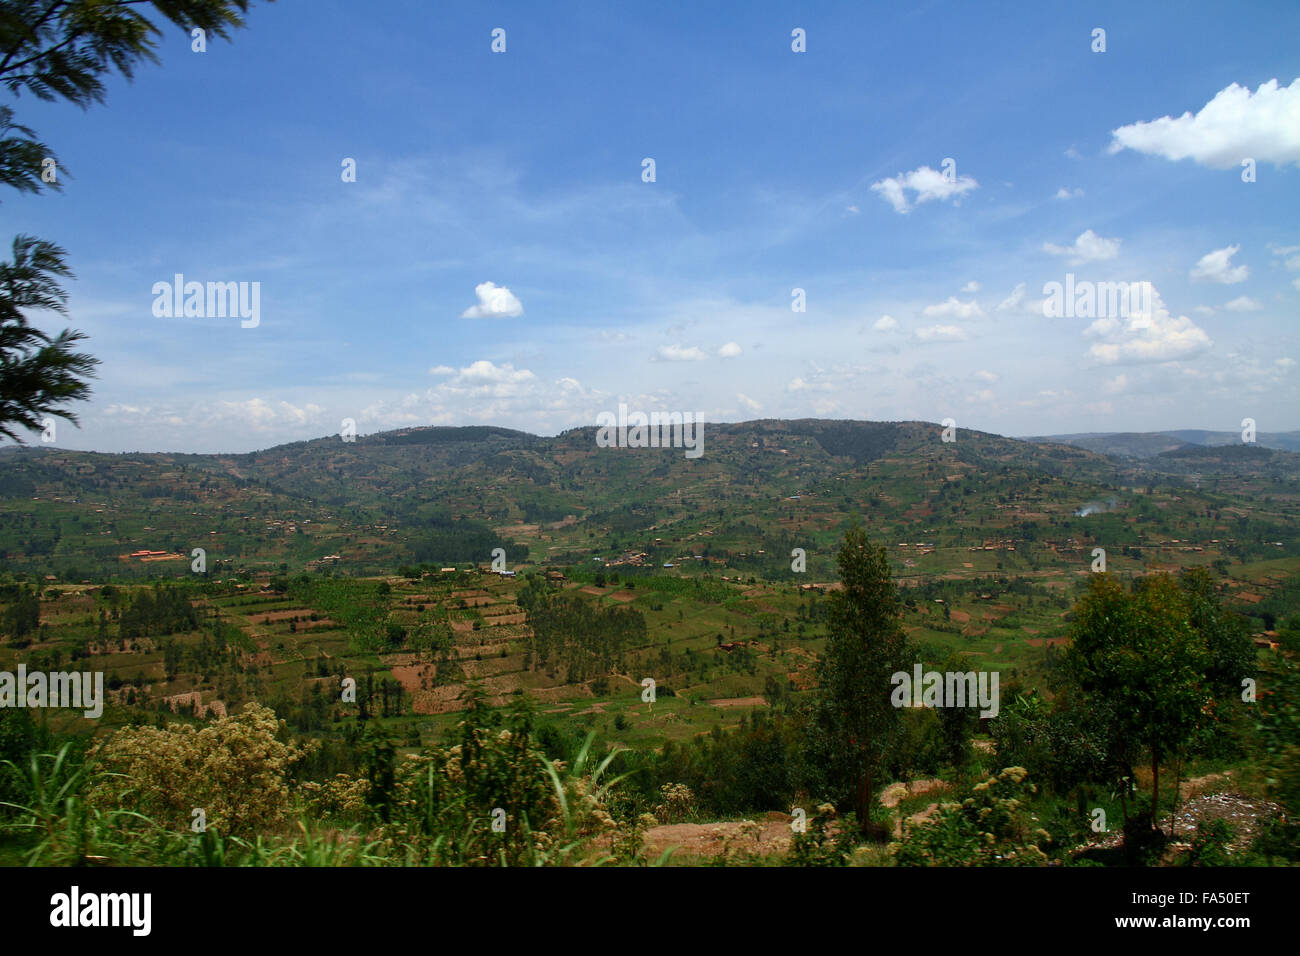 The beautiful lush hillside country of Rwanda and its many terraced farms - Stock Image